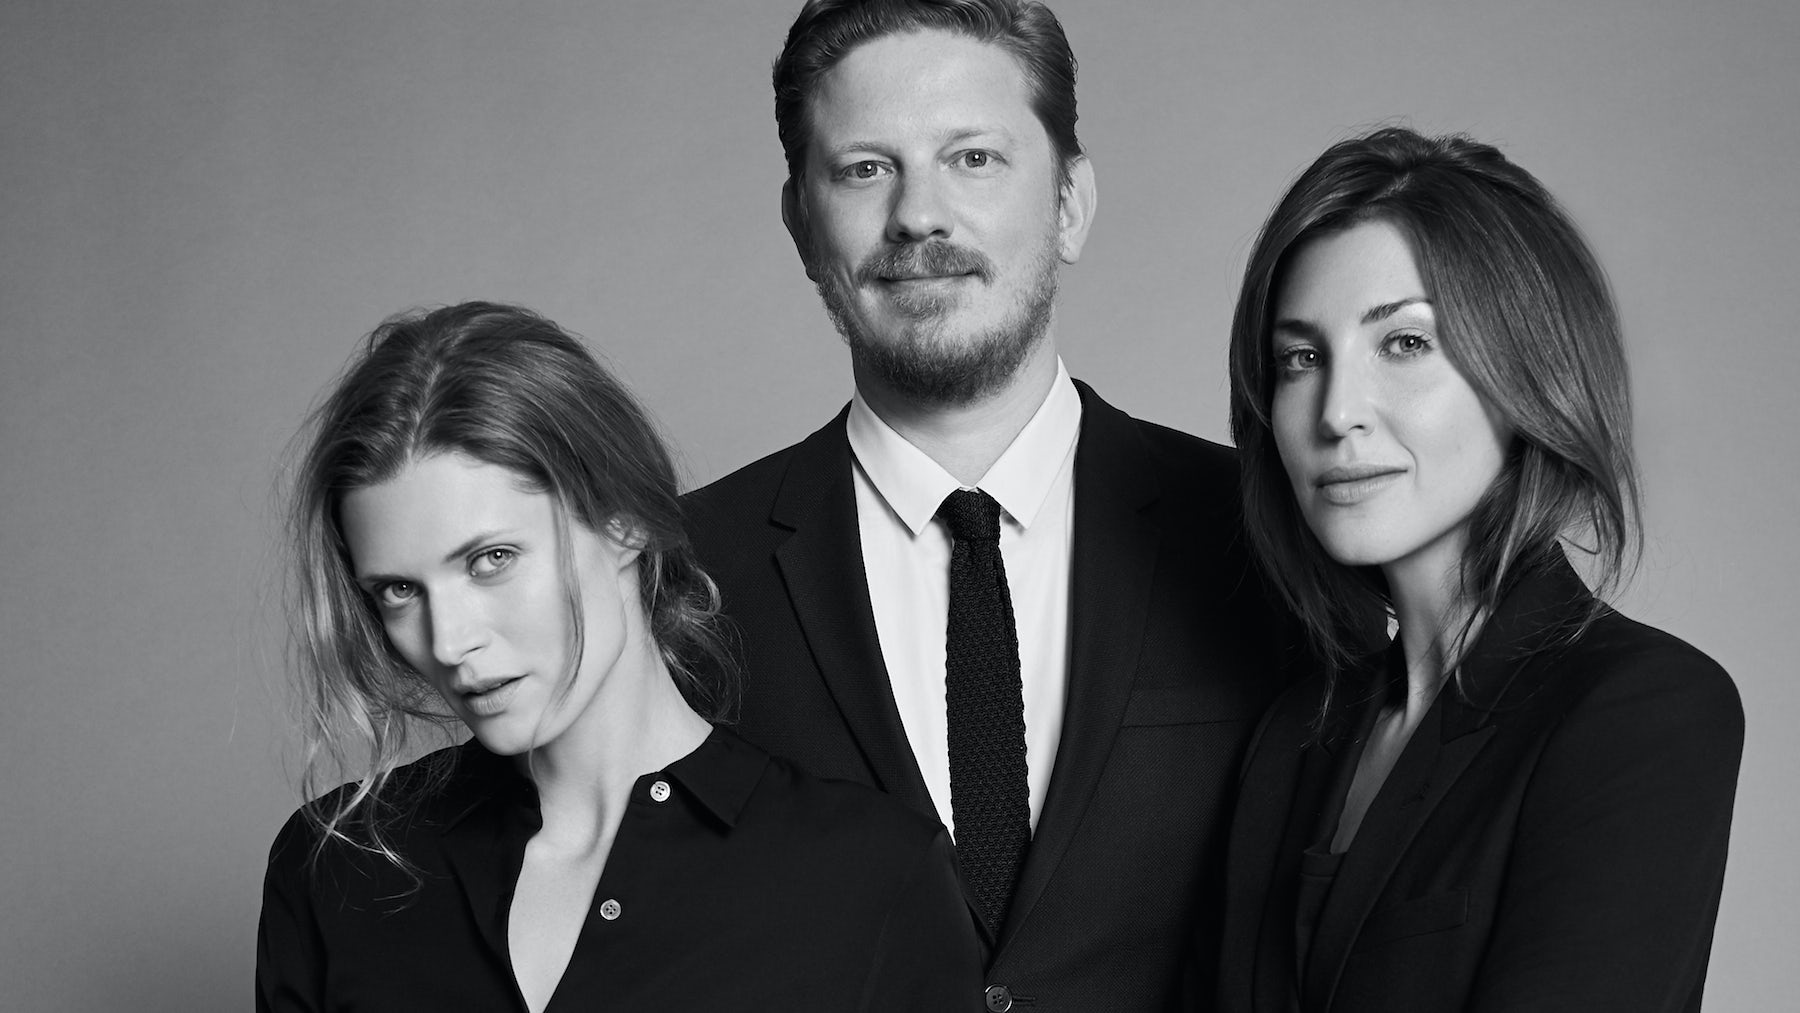 The Polish edition of Vogue will launch with editor Filip Niedenthal, editor-at-large Malgosia Bela and publishing partner Kasia Kulczyk | Source: Courtesy